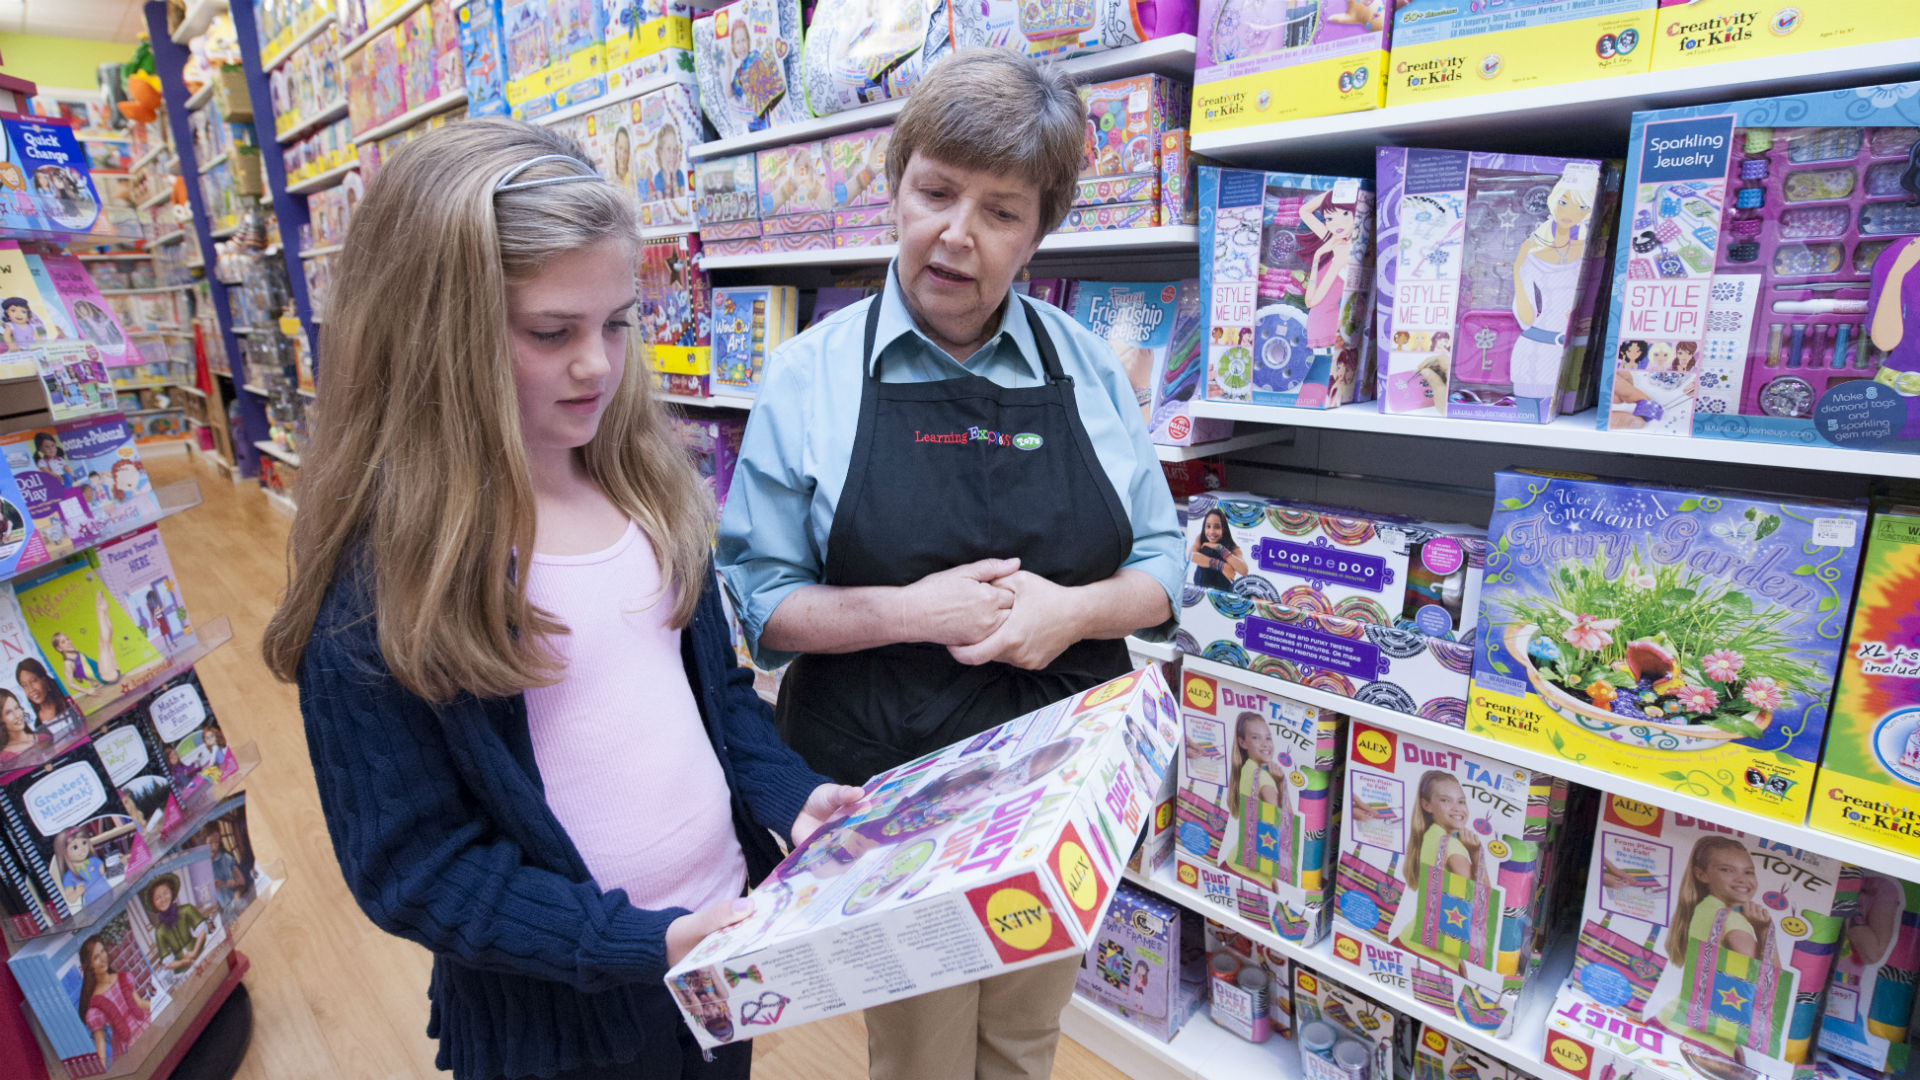 woman helping girl pick out toy at learning express toy store